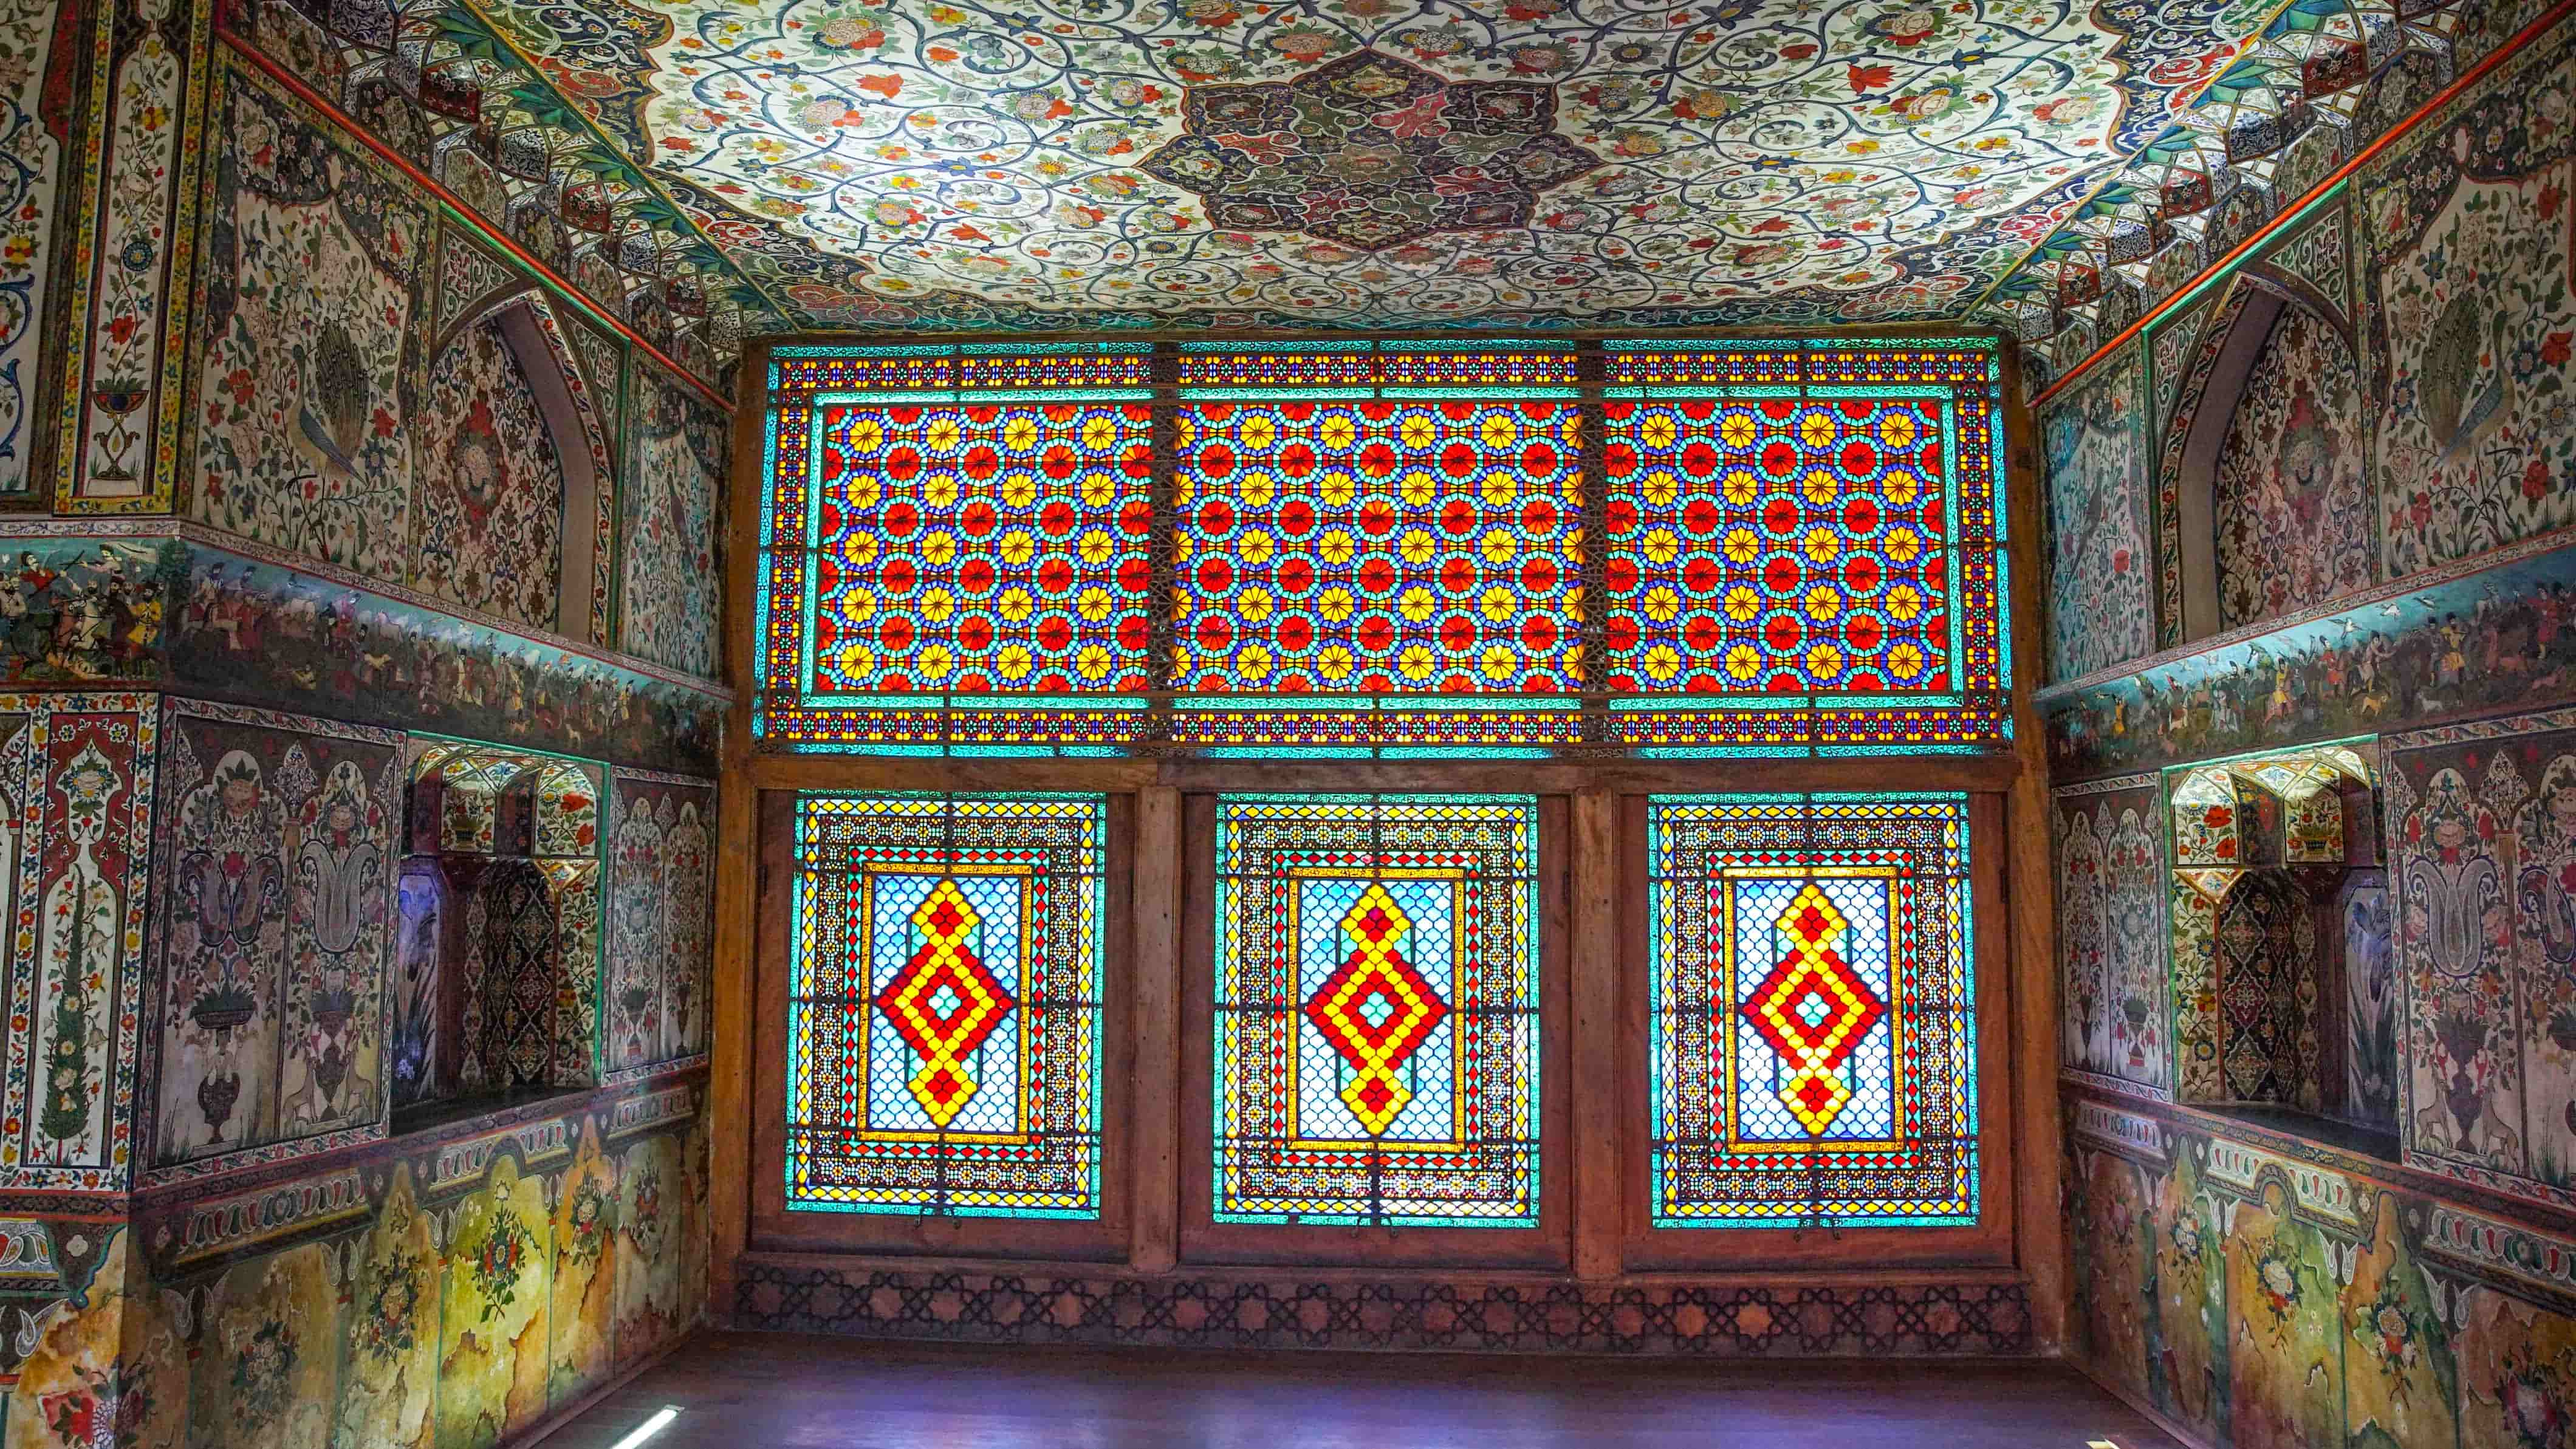 intricate mosaic tiles and glass